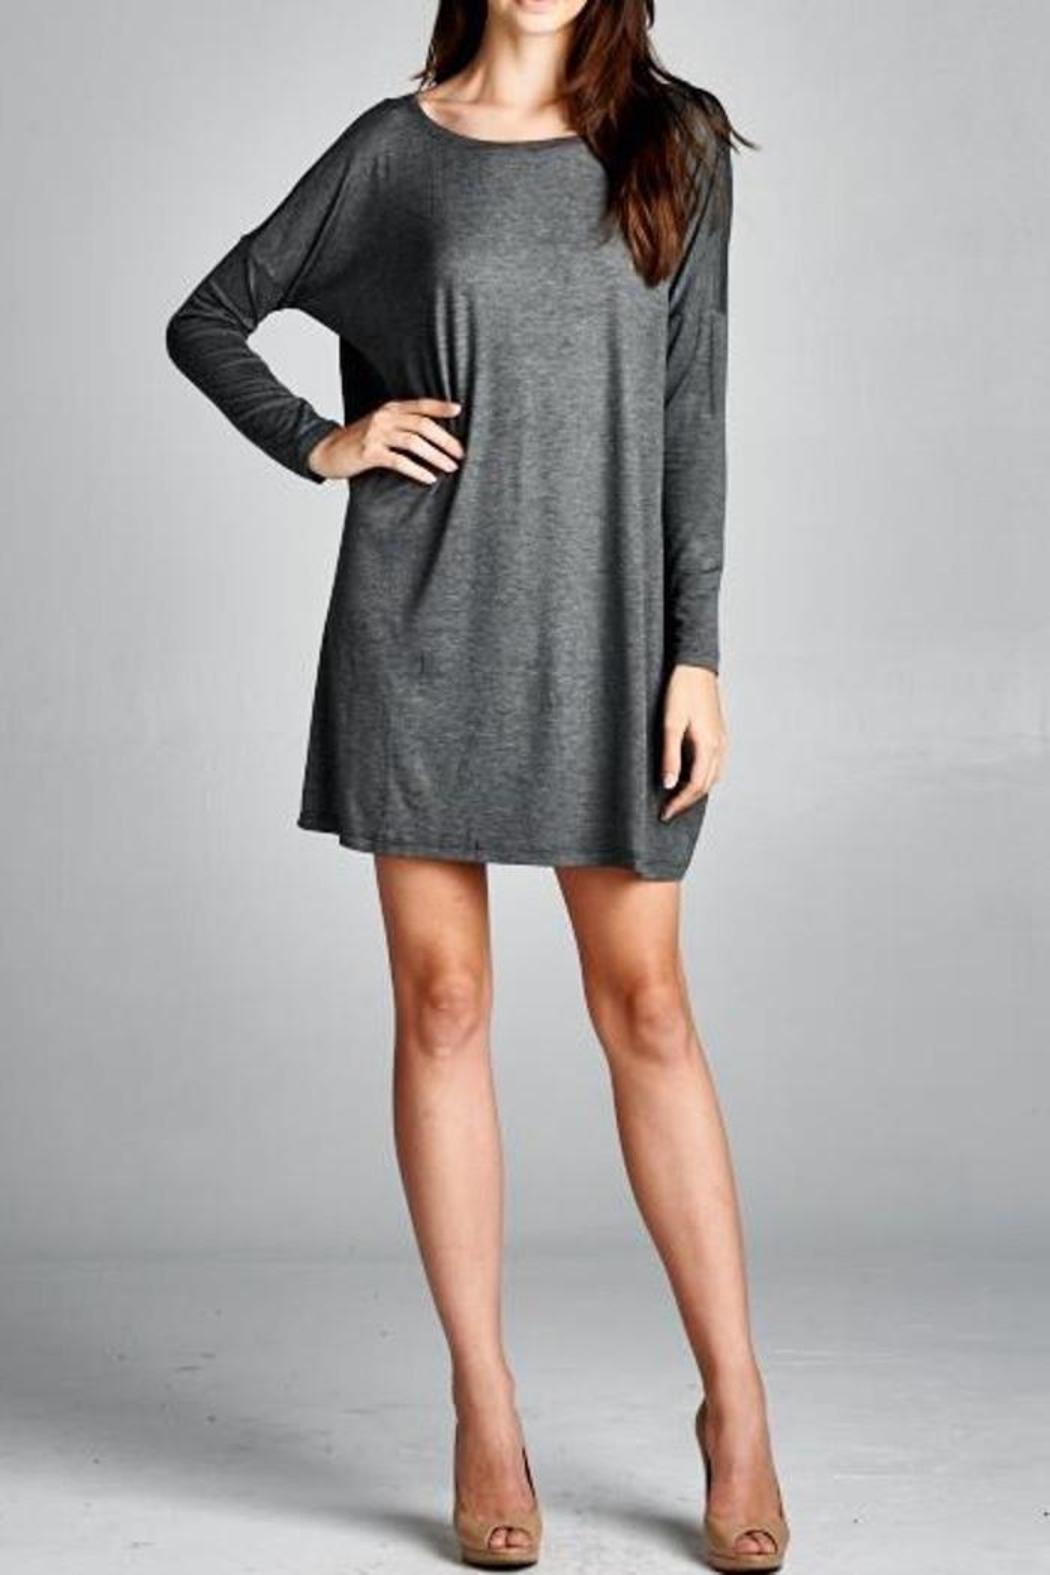 charcoal t shirt dress from laredo by dollz boutique